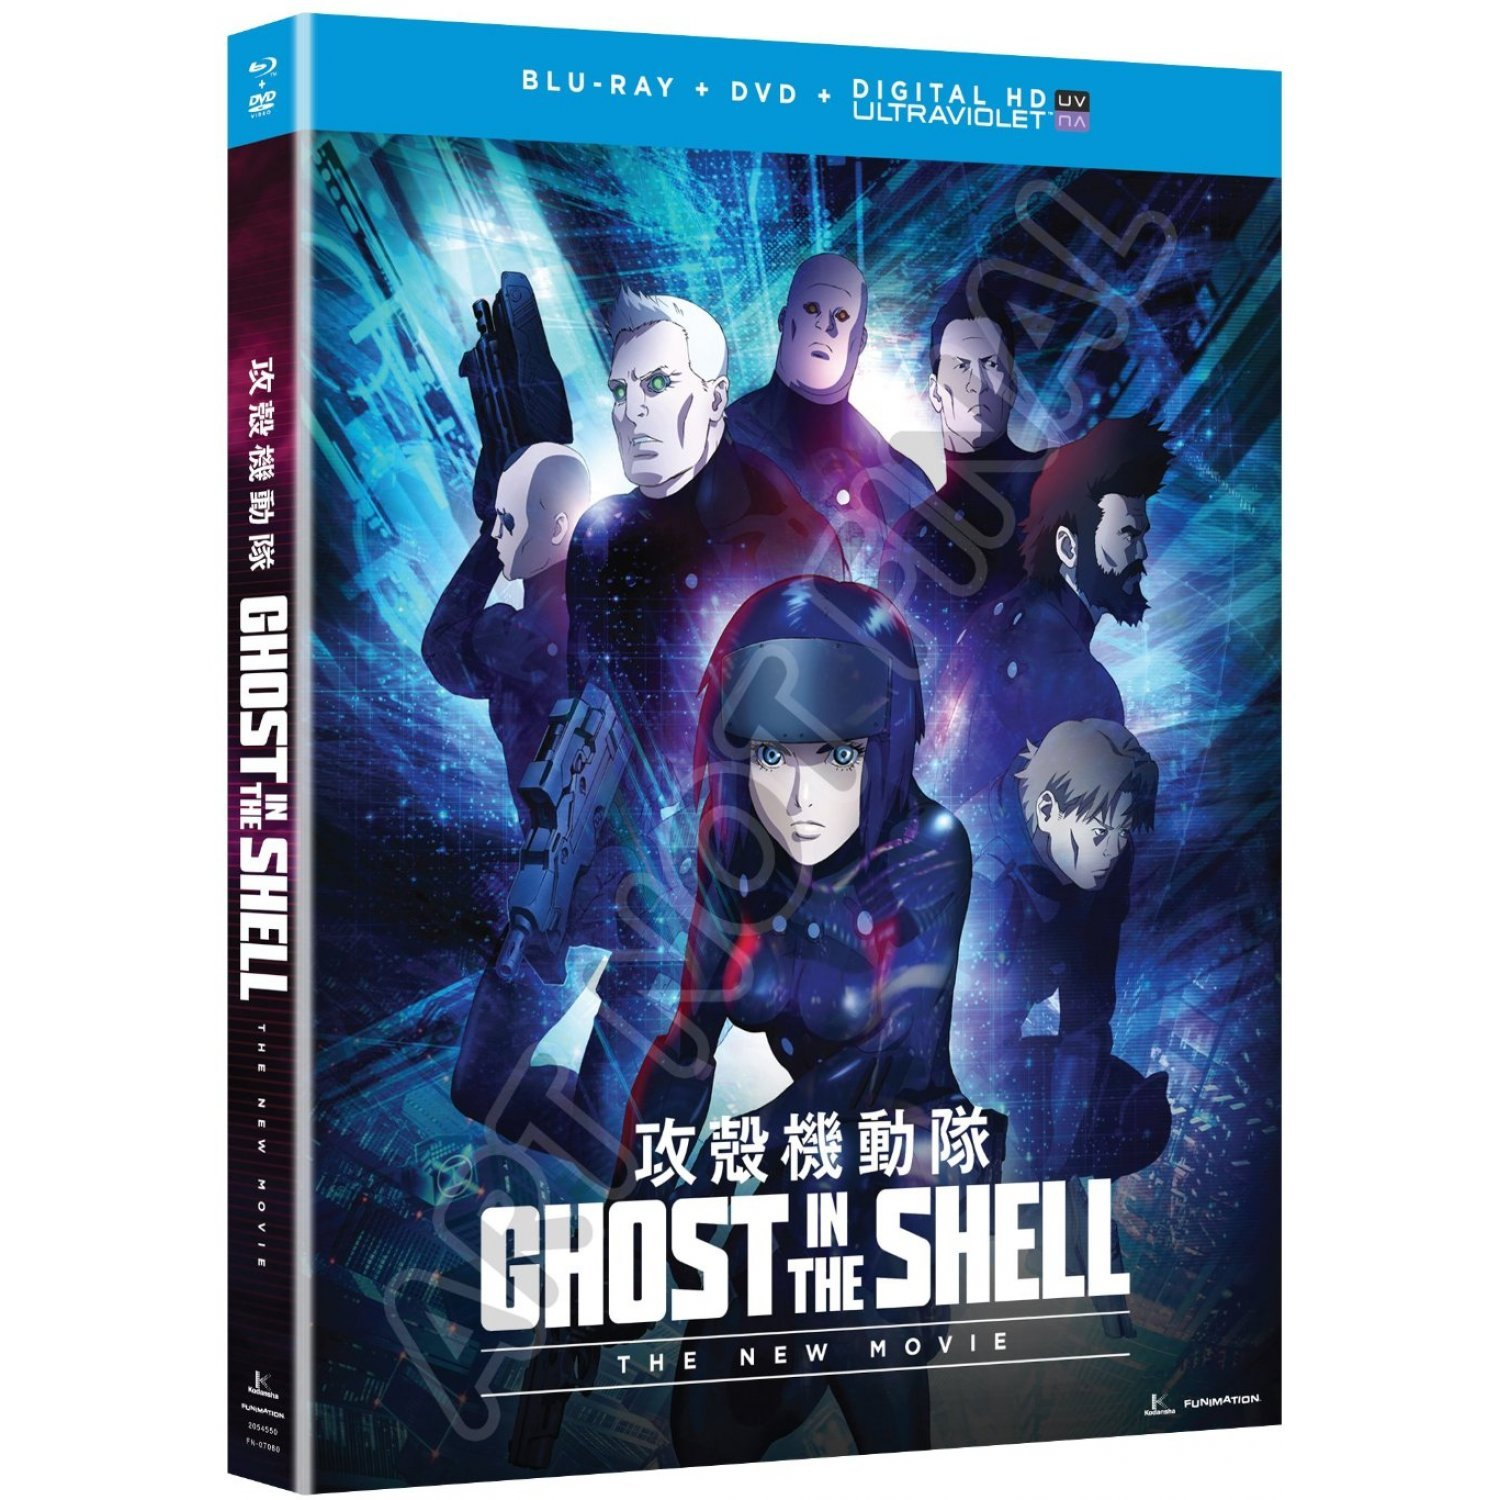 Ghost in the Shell: The New Movie [Blu-ray+DVD+UltraViolet]